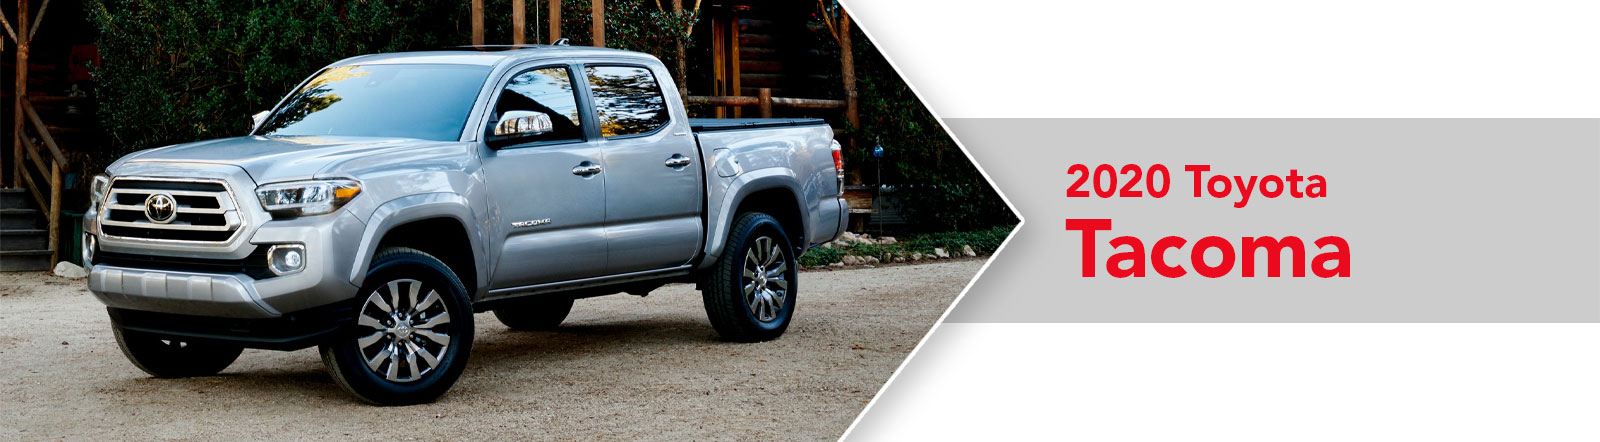 All-New 2020 Toyota Tacoma For Sale in Metairie, LA